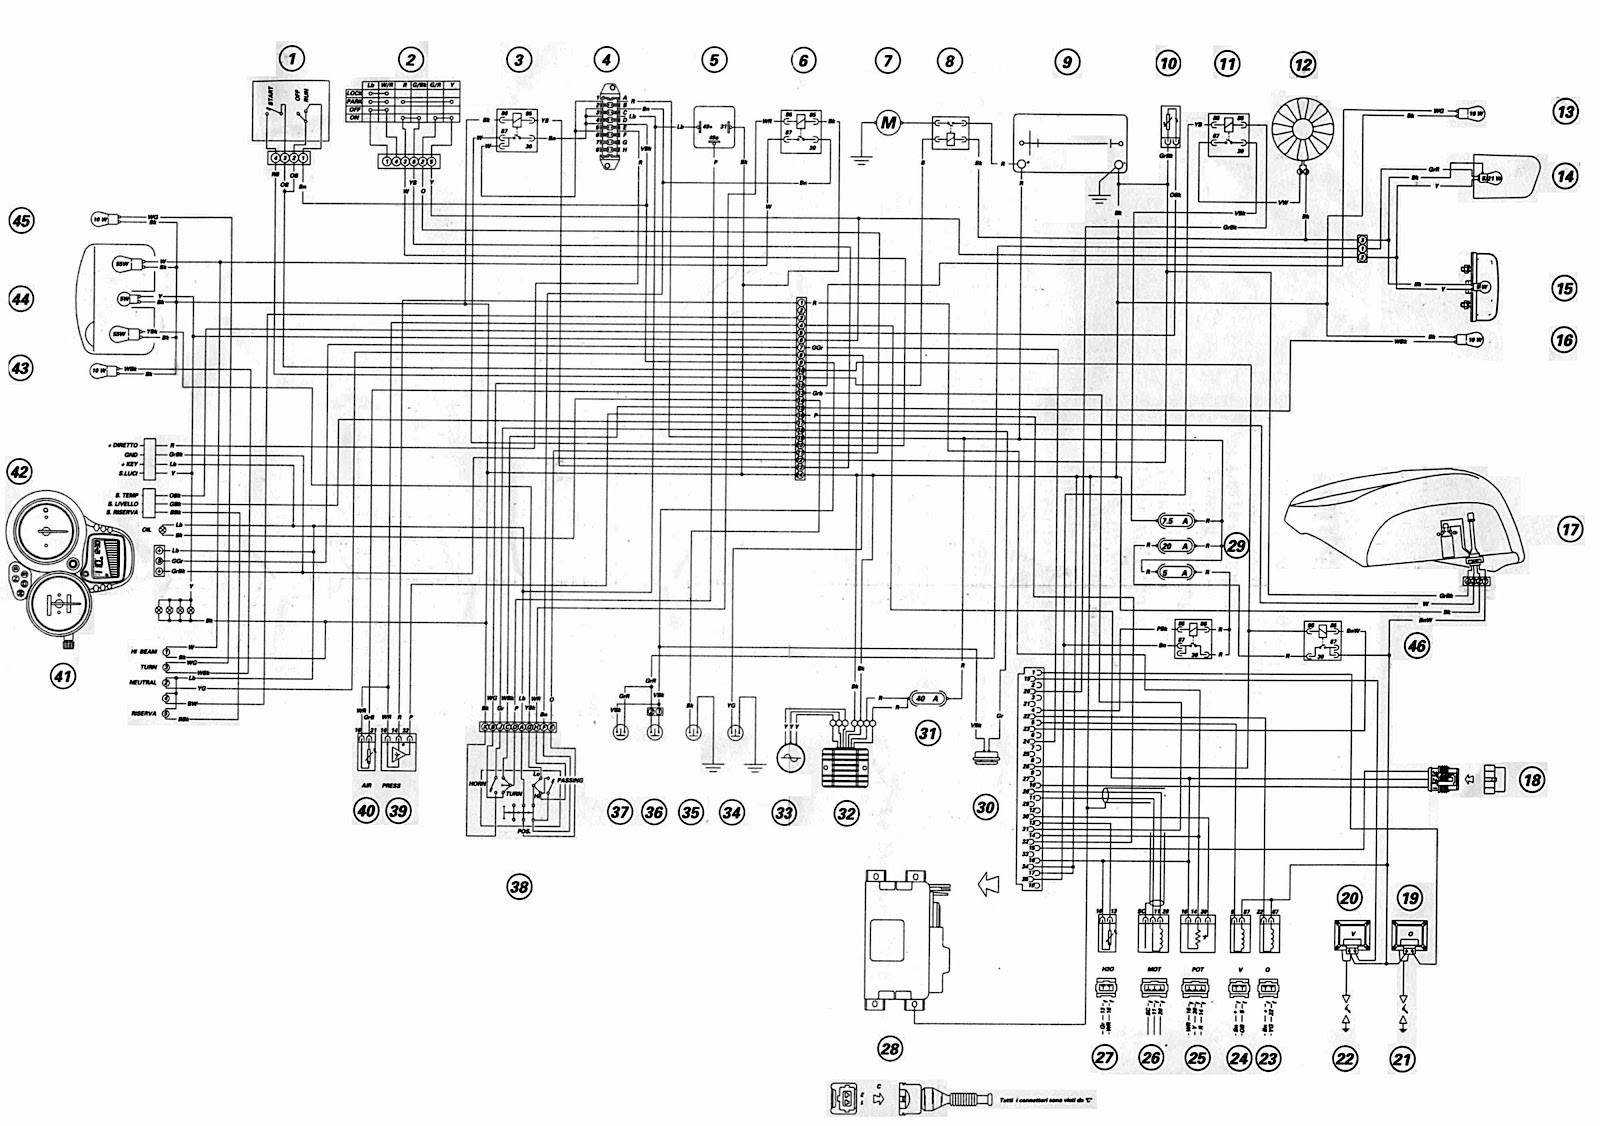 hight resolution of ducati st4 2002 motorcycle wiring diagram ducati st4 suzuki quadrunner 160